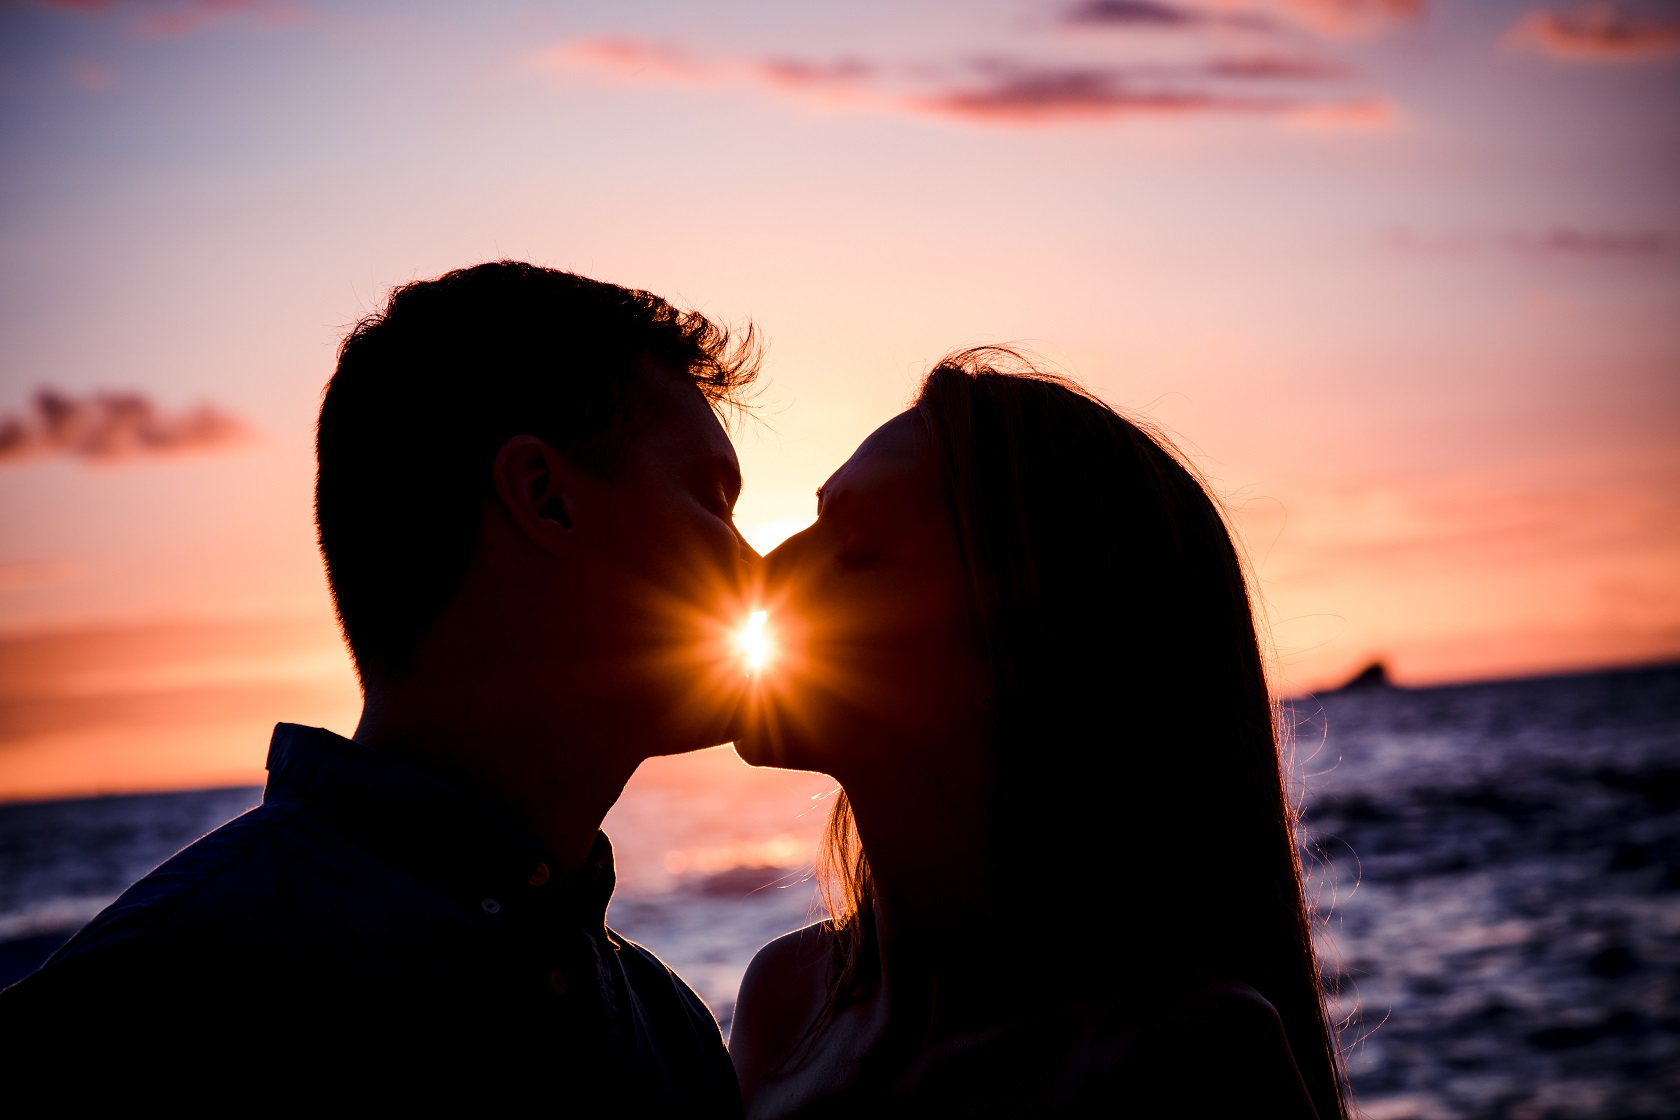 couples romantic kiss silhouette sunset hawaii ocean portrait